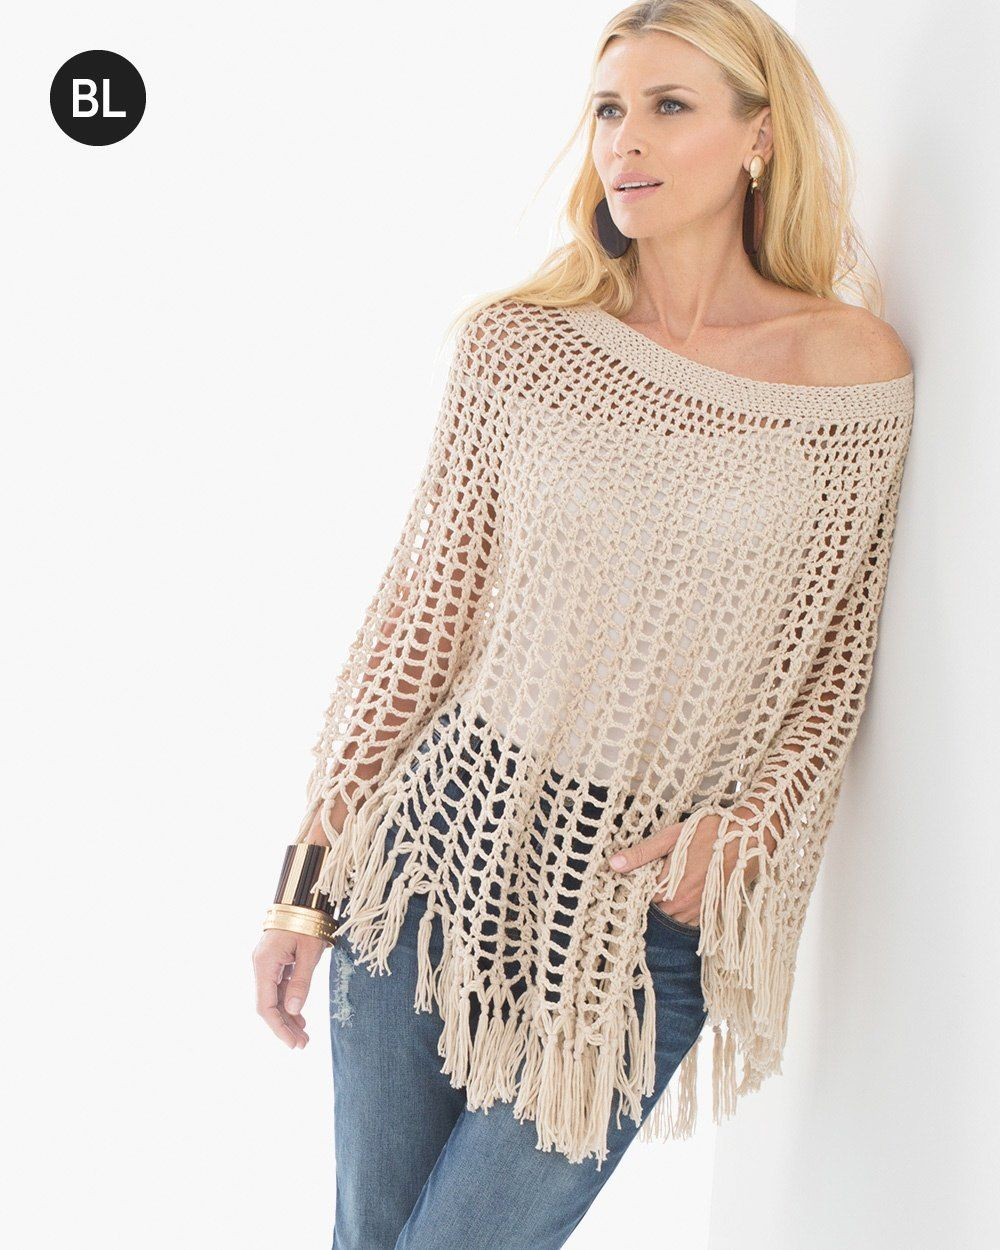 Open-Knit Poncho | Poncho | Pinterest